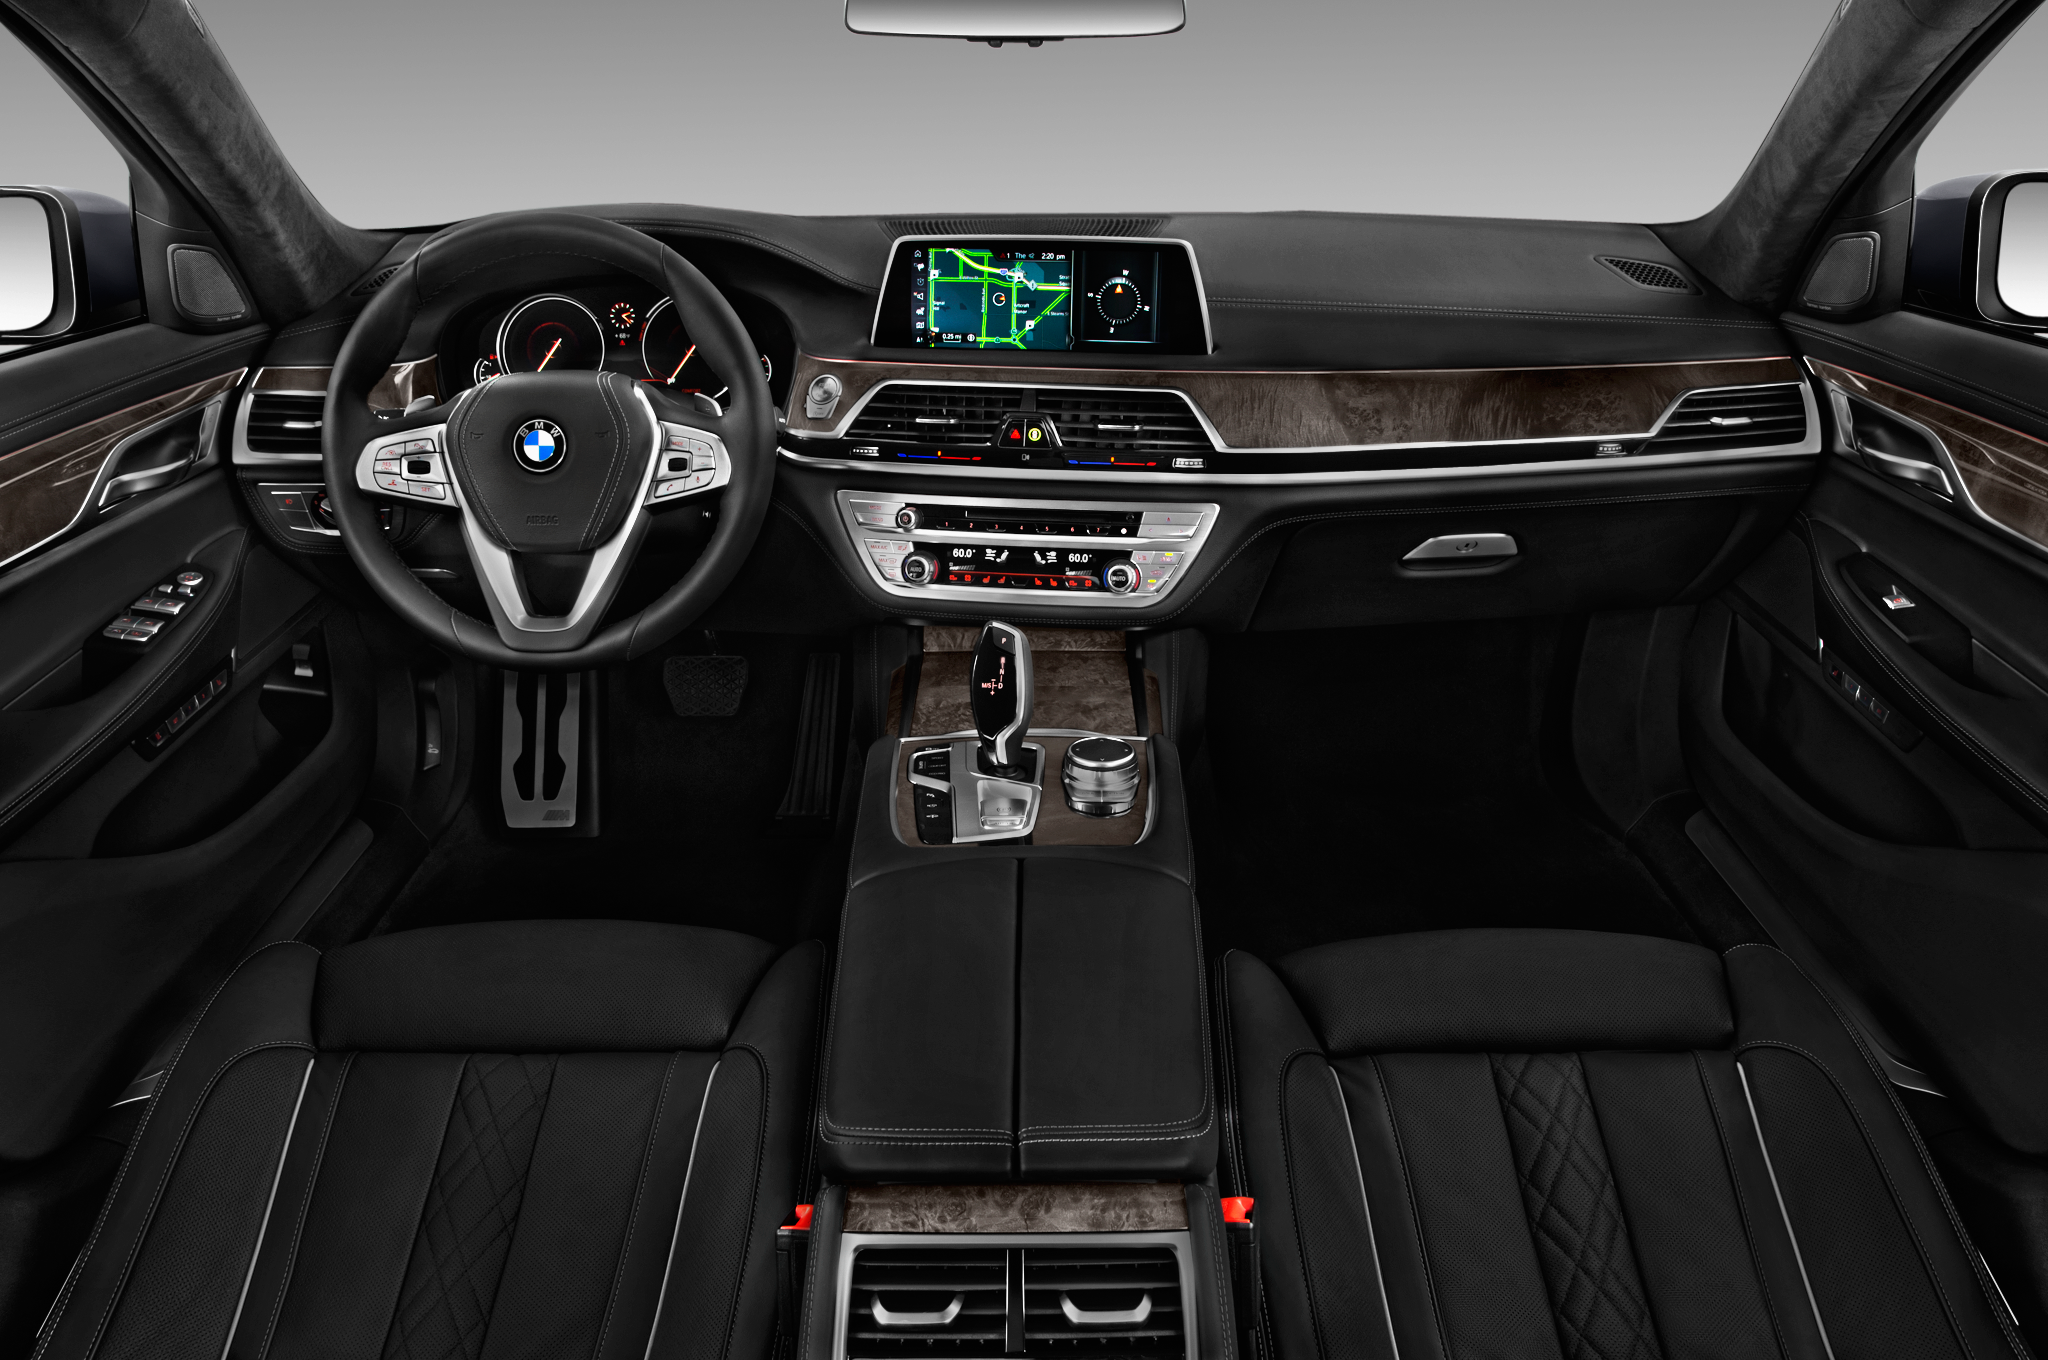 BMW 7 Series Turns 40 Issues Limited Edition Model